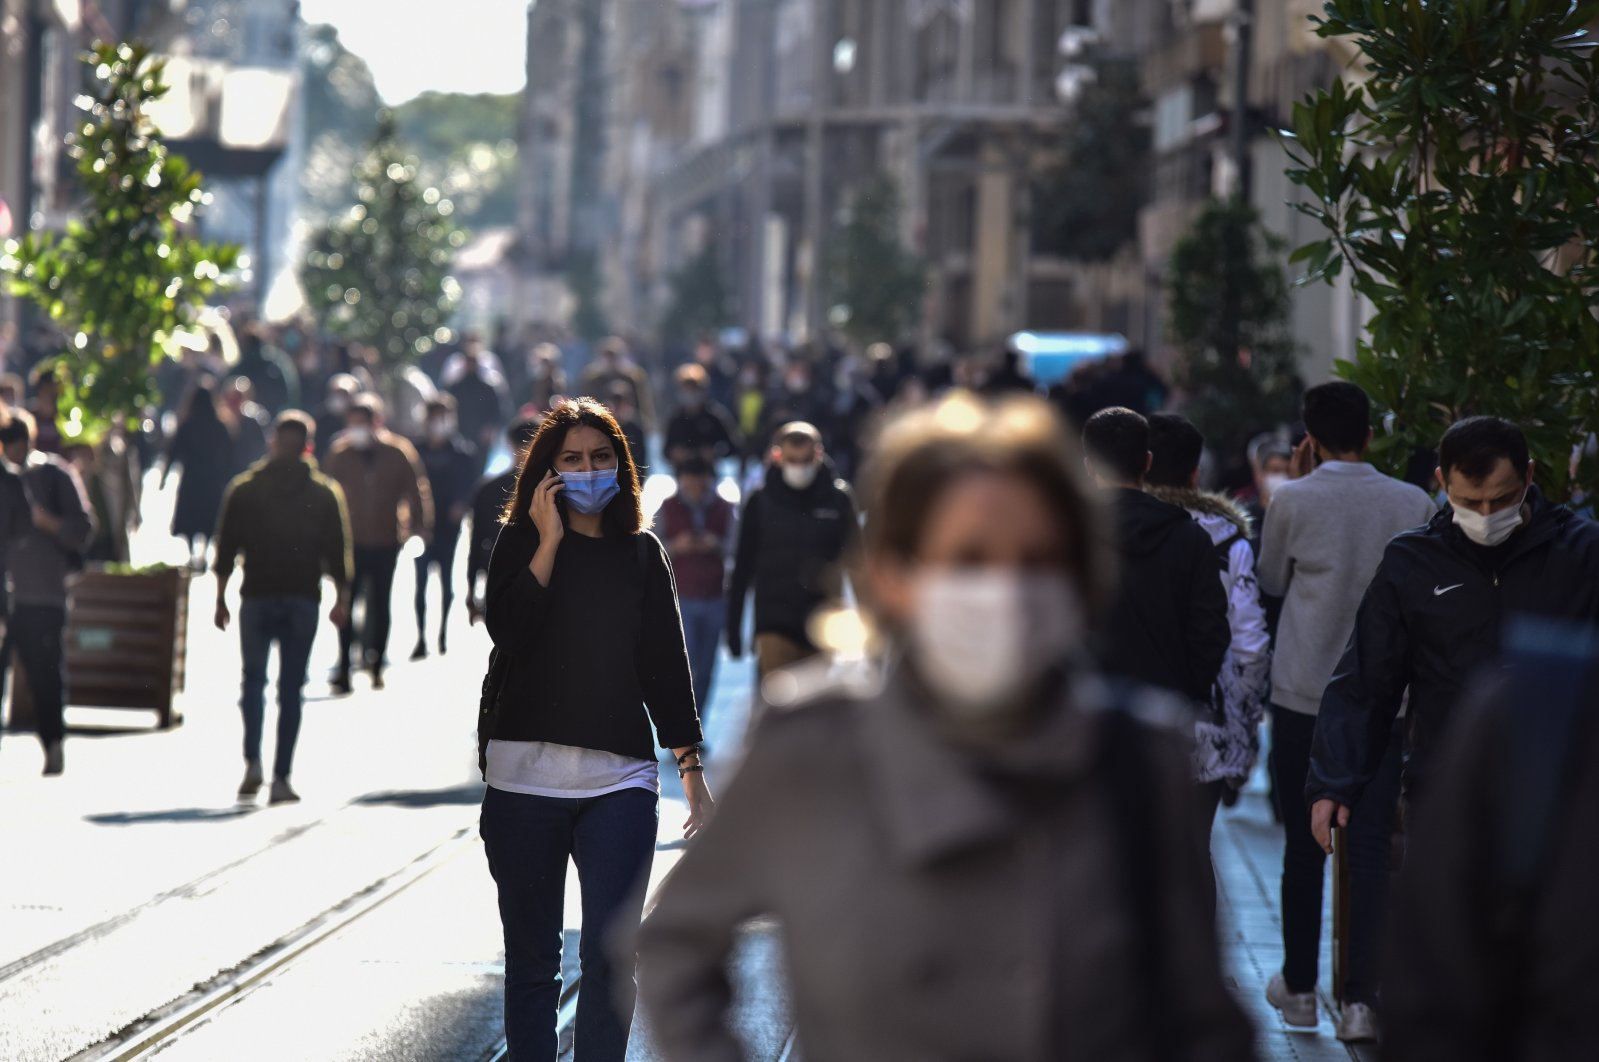 People with face masks walk on Istiklal street near Taksim Square, in Istanbul, Turkey, Nov. 2, 2020. (DHA Photo)